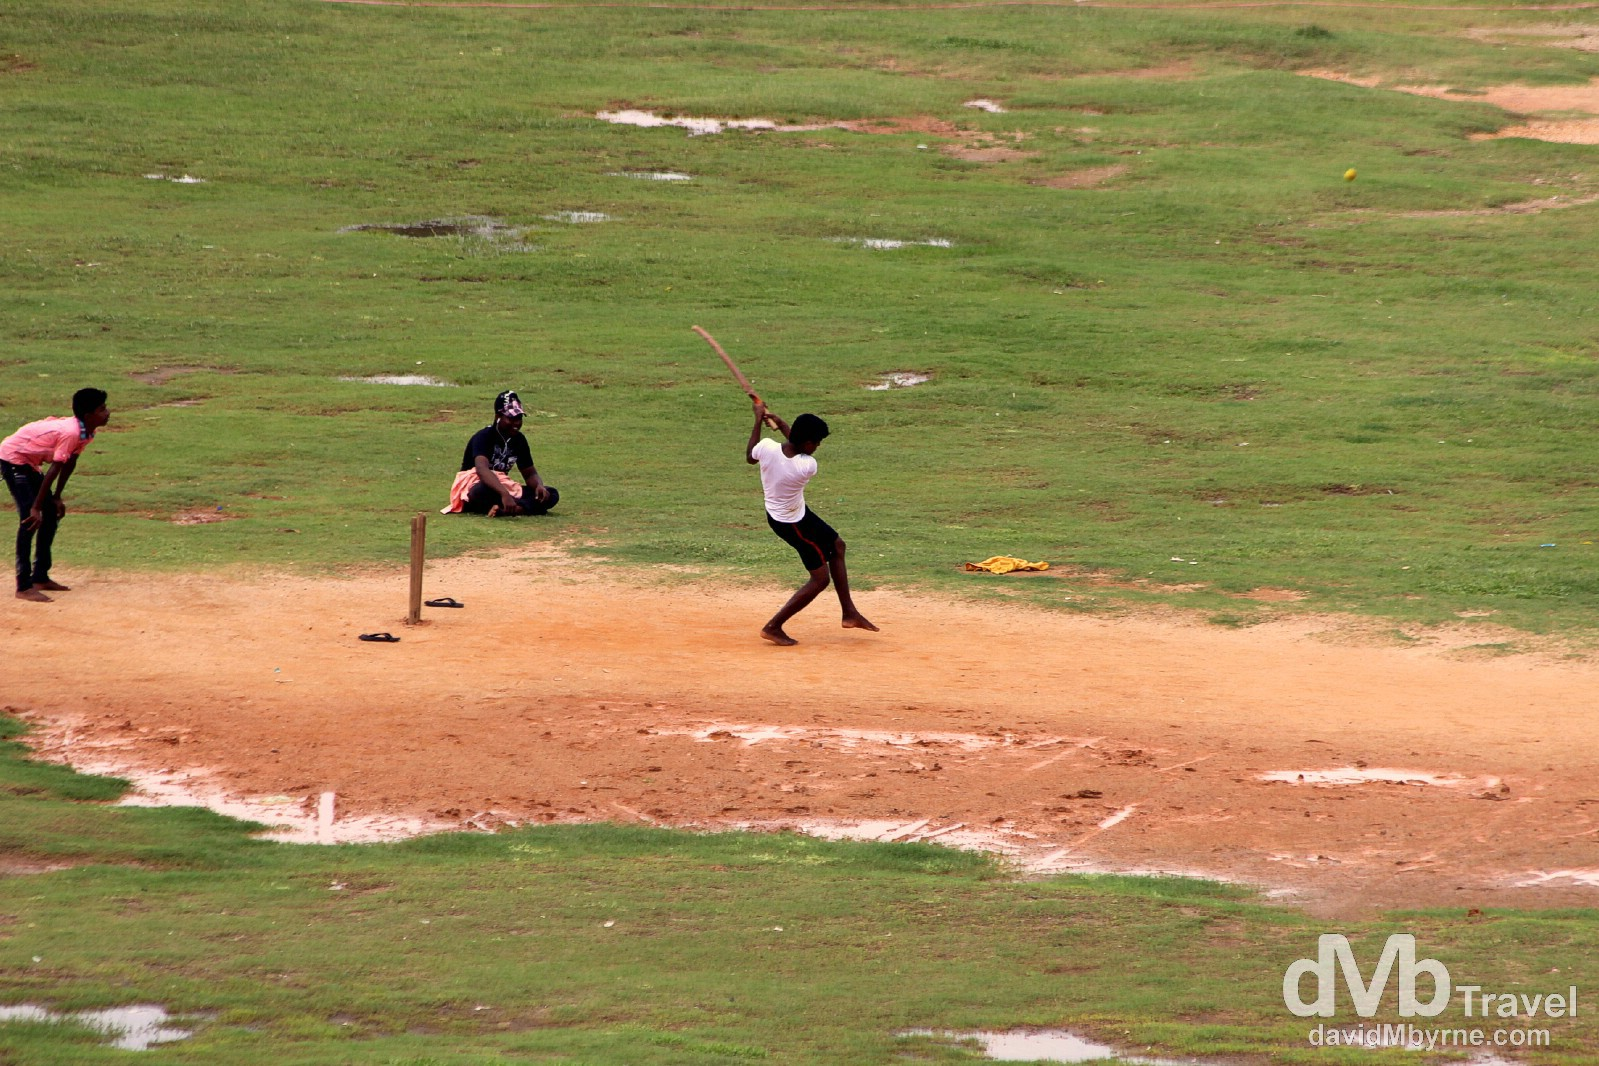 An impromptu game of cricket as seen from the walls of Galle Fort, Galle, southern Sri Lanka. September 2nd 2012.